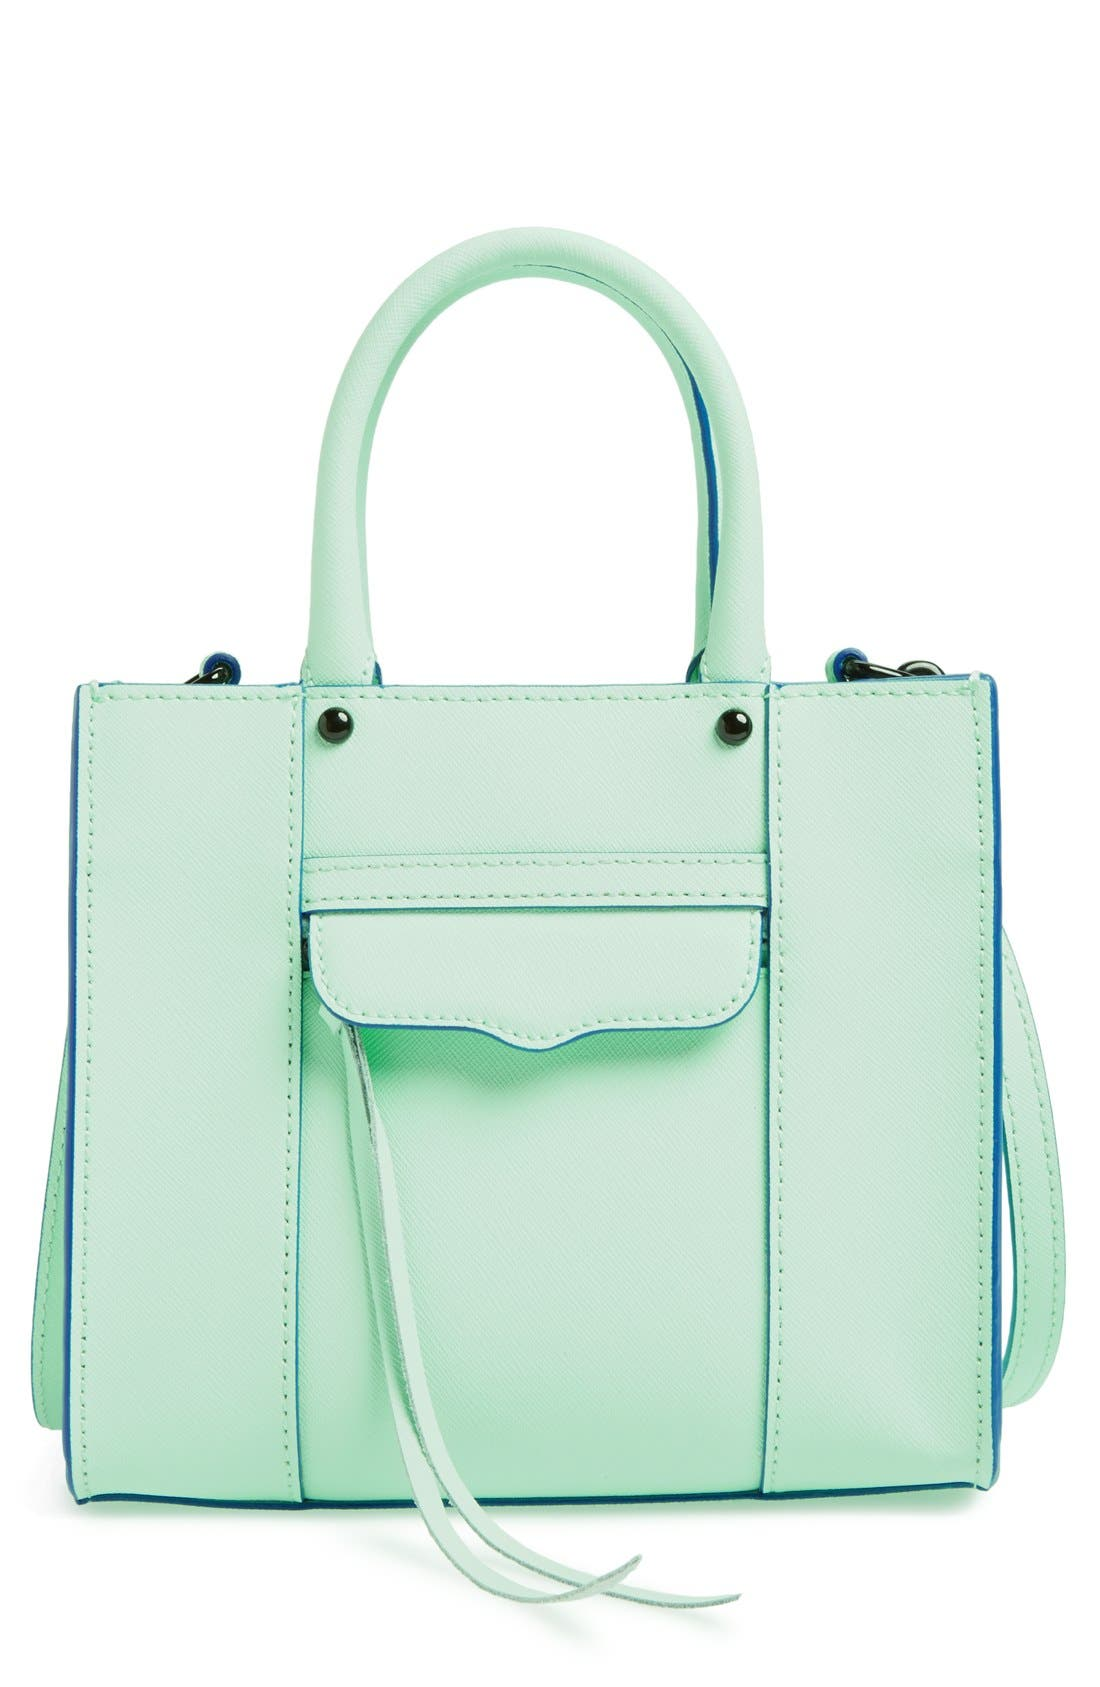 Alternate Image 1 Selected - Rebecca Minkoff 'Mini MAB Tote' Crossbody Bag